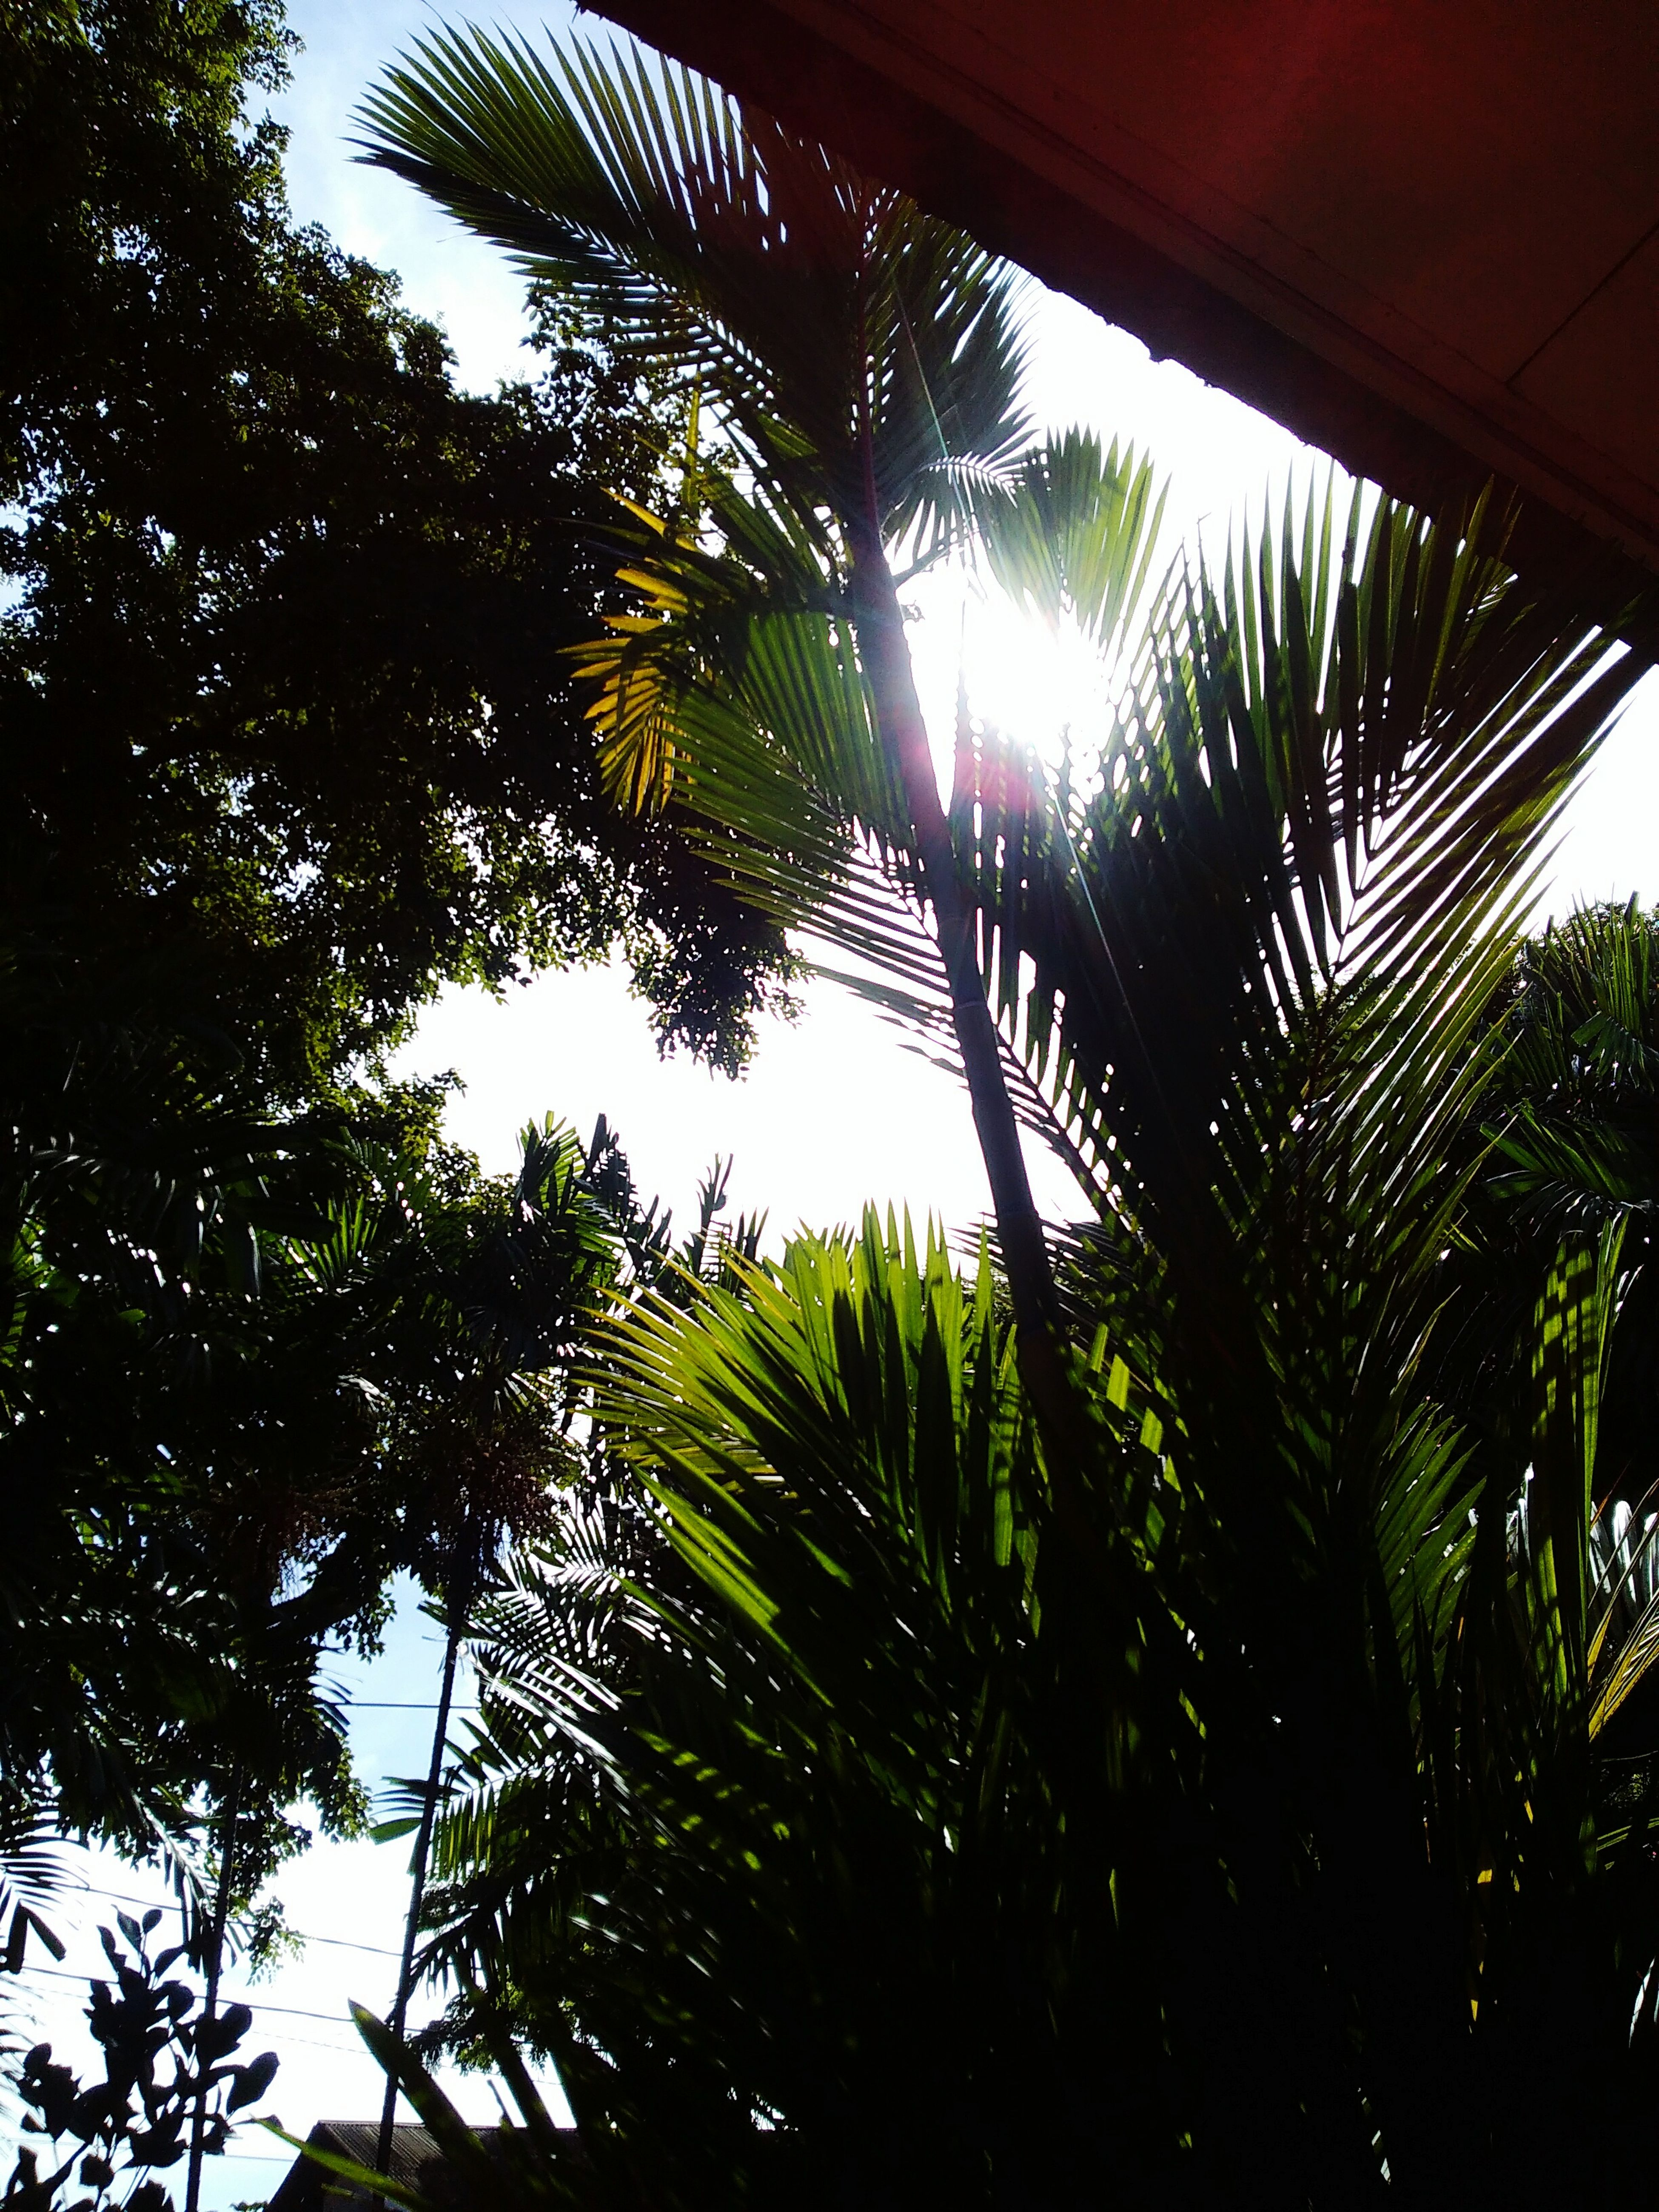 Nature's Diversities Forest In City Sunshine ☀ In The Dark Situation Different Sensation Pure Natural